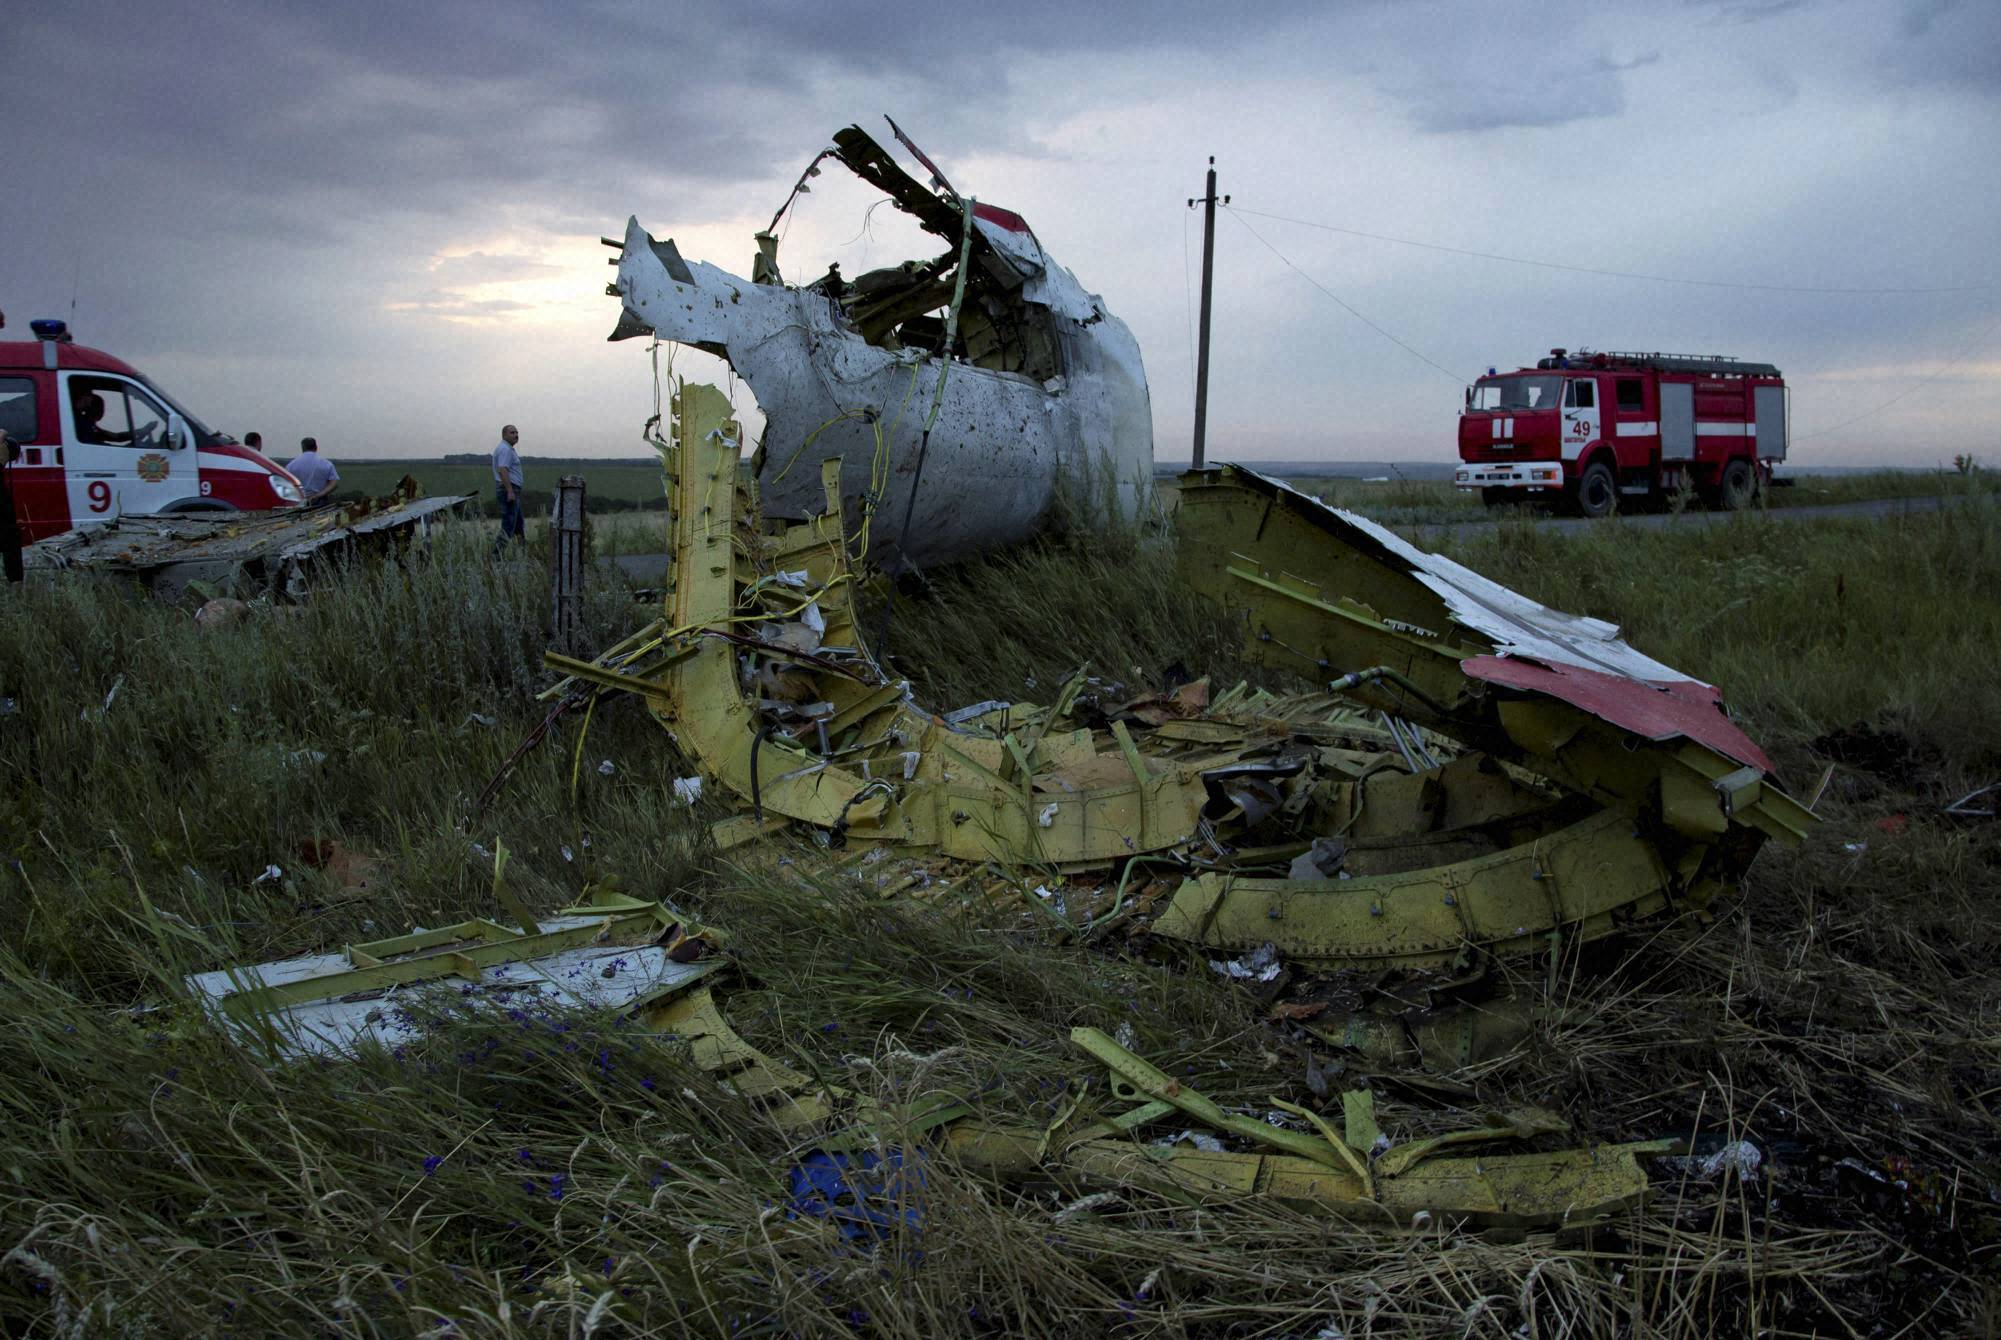 Fire engines, arrive, crash site, passenger plane, village of Hrabove, Ukraine, sun sets, Ukraine, carrying, 295 people, shot down, flew, country,  government, pro-Russia separatists, fighting, region denied, responsibility, downing, plane